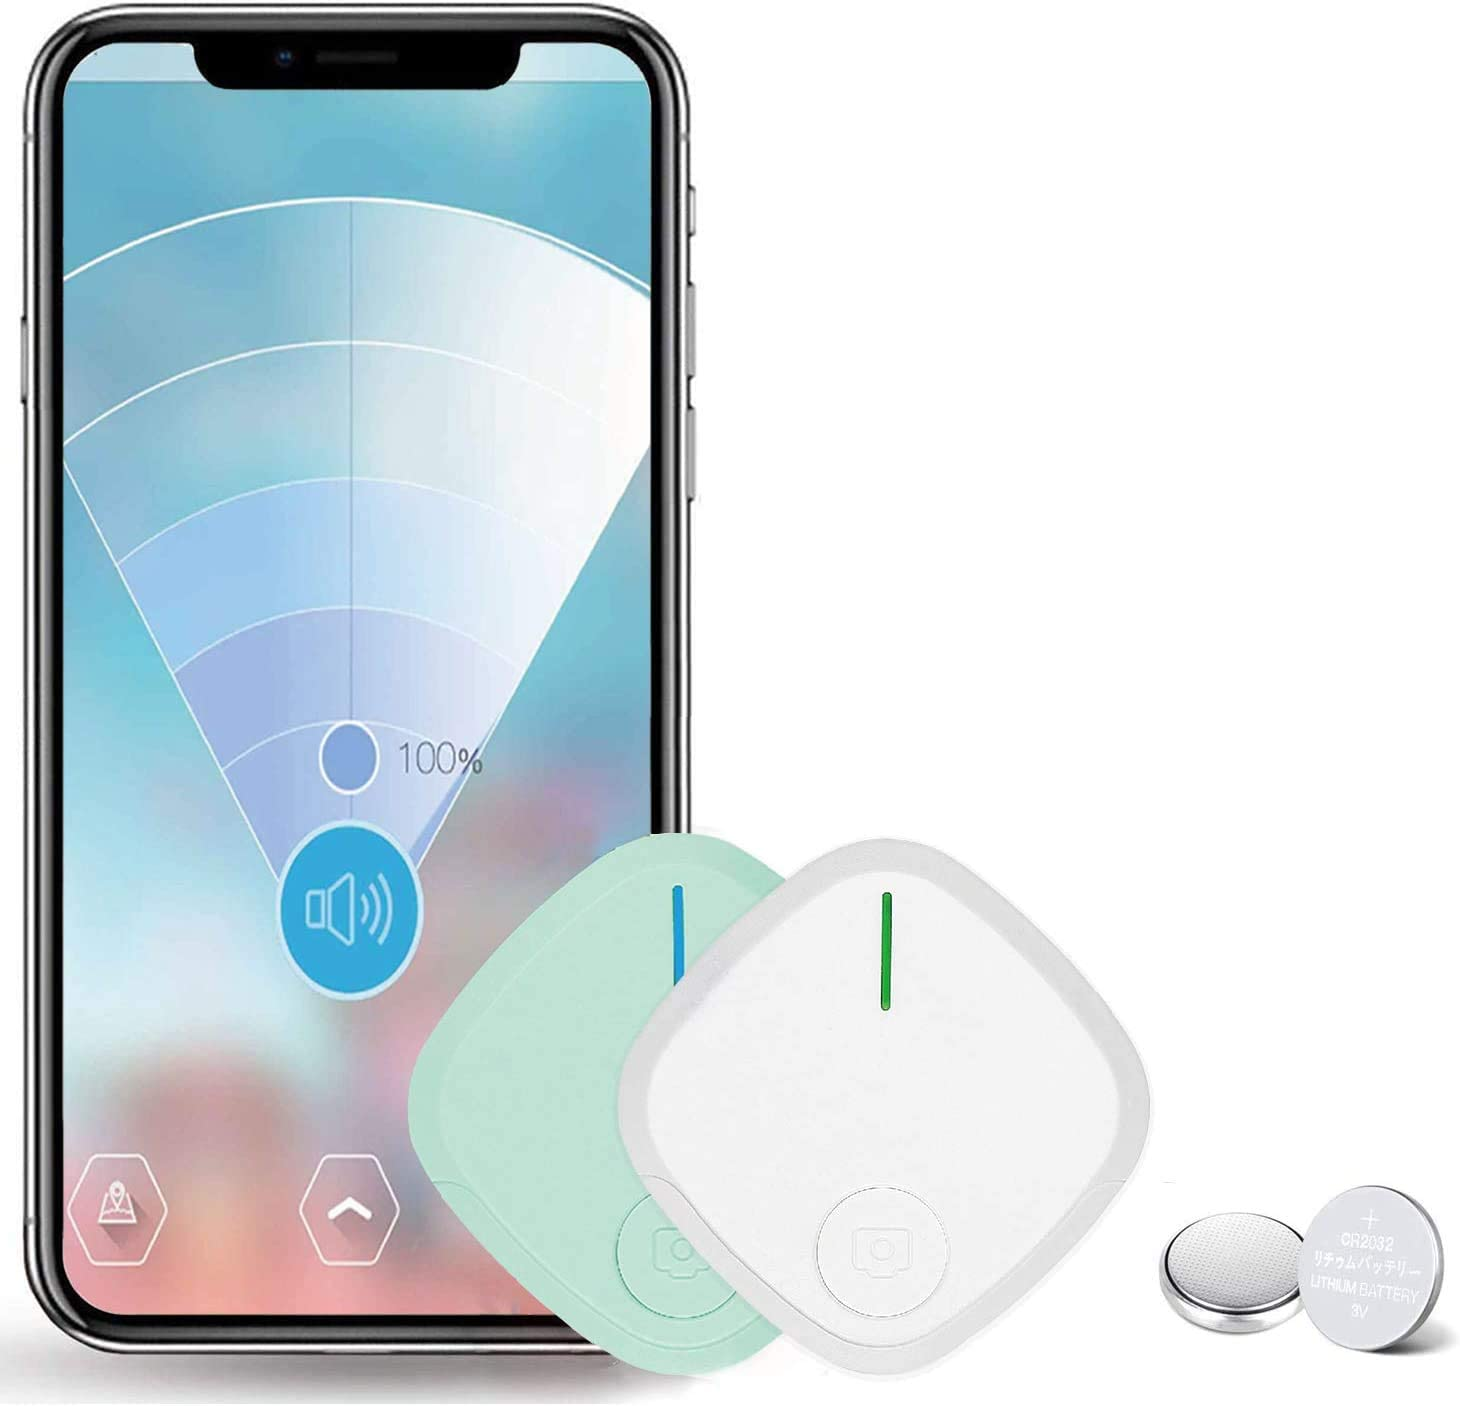 Key Finder, Hockvill Item Locator Wireless Wallet Tracker, Smart Tracker Bluetooth Tracker for Dogs, Kids, Cats, Luggage, Wallet, with app for Phone, Replaceable Battery Tracking Device - 2 Packs